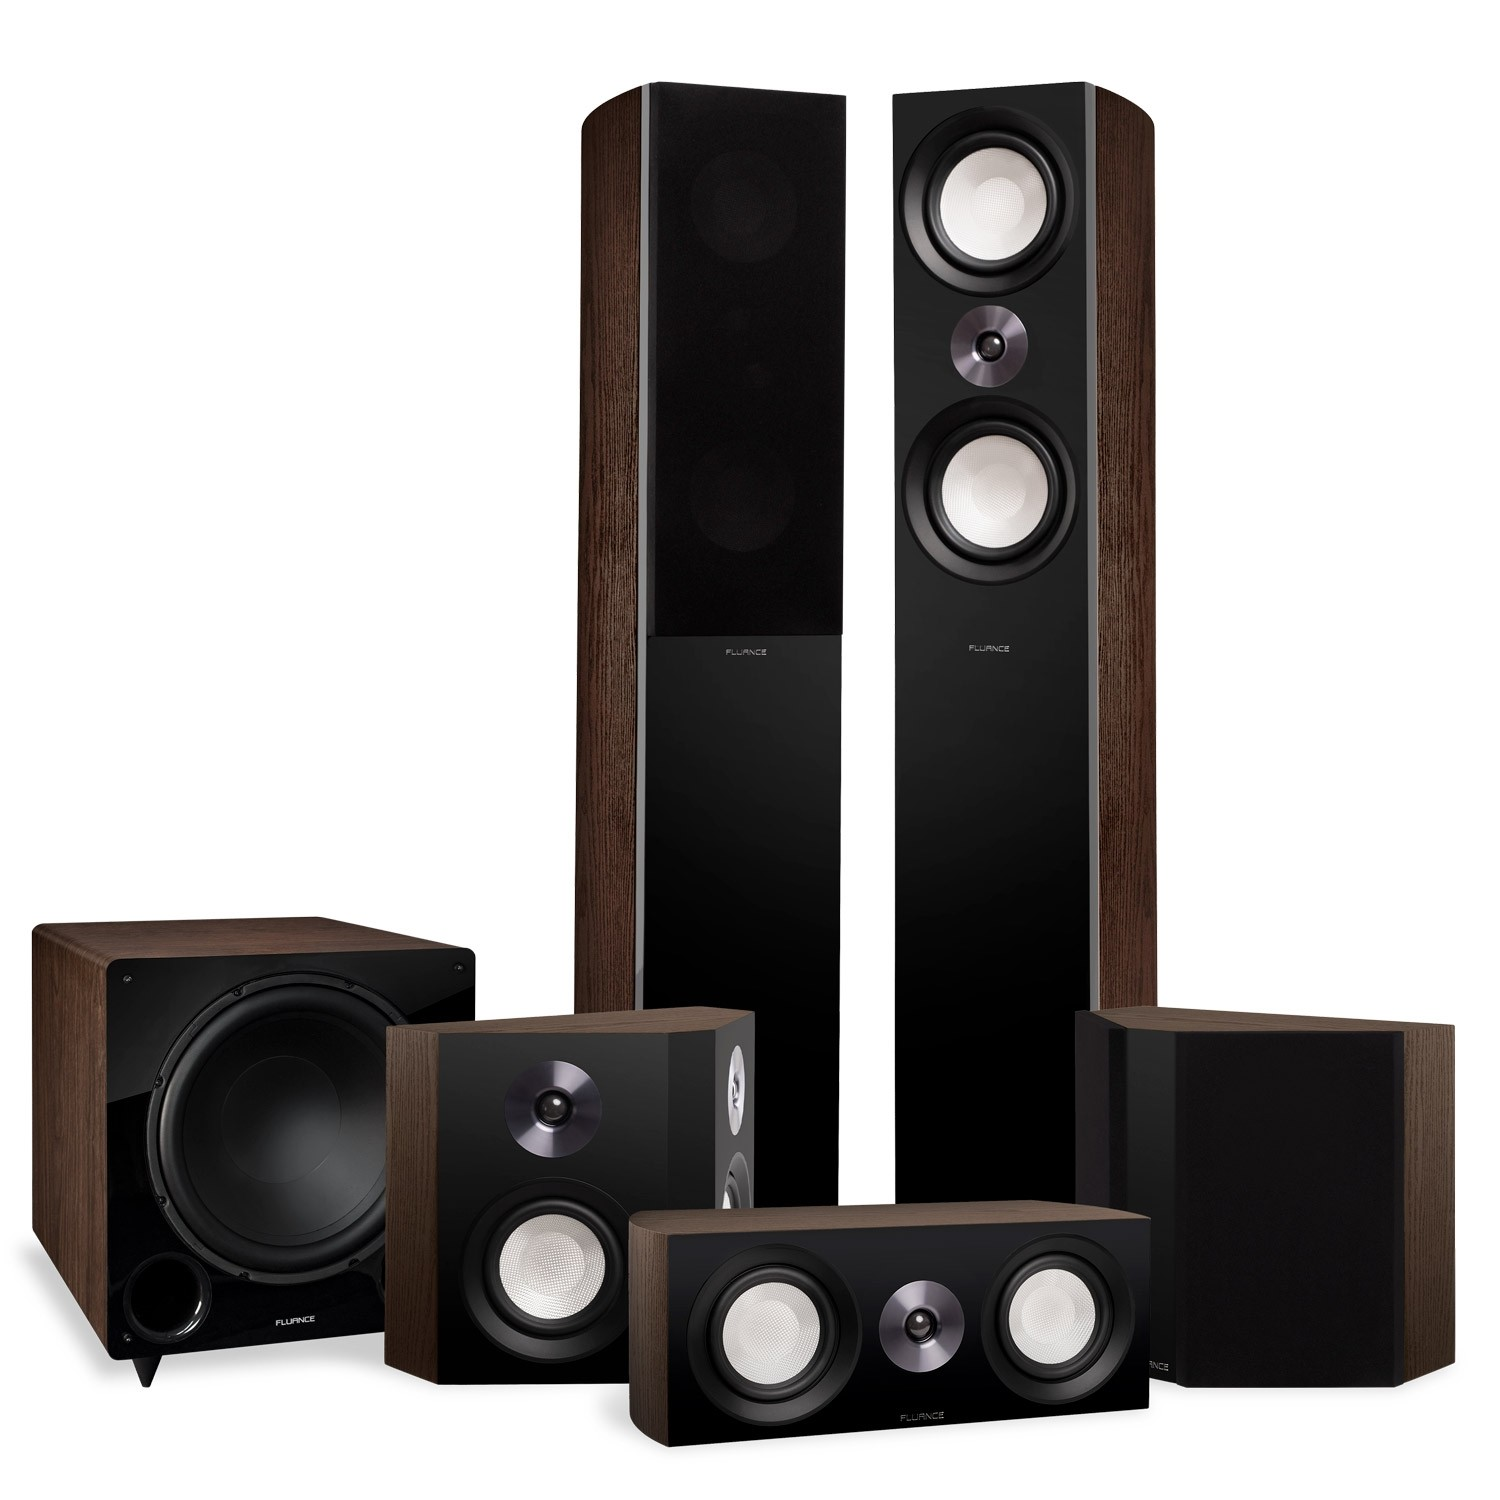 Reference Surround Sound Home Theater 5.1 Channel Speaker System with Bipolar Speakers and DB12 Subwoofer